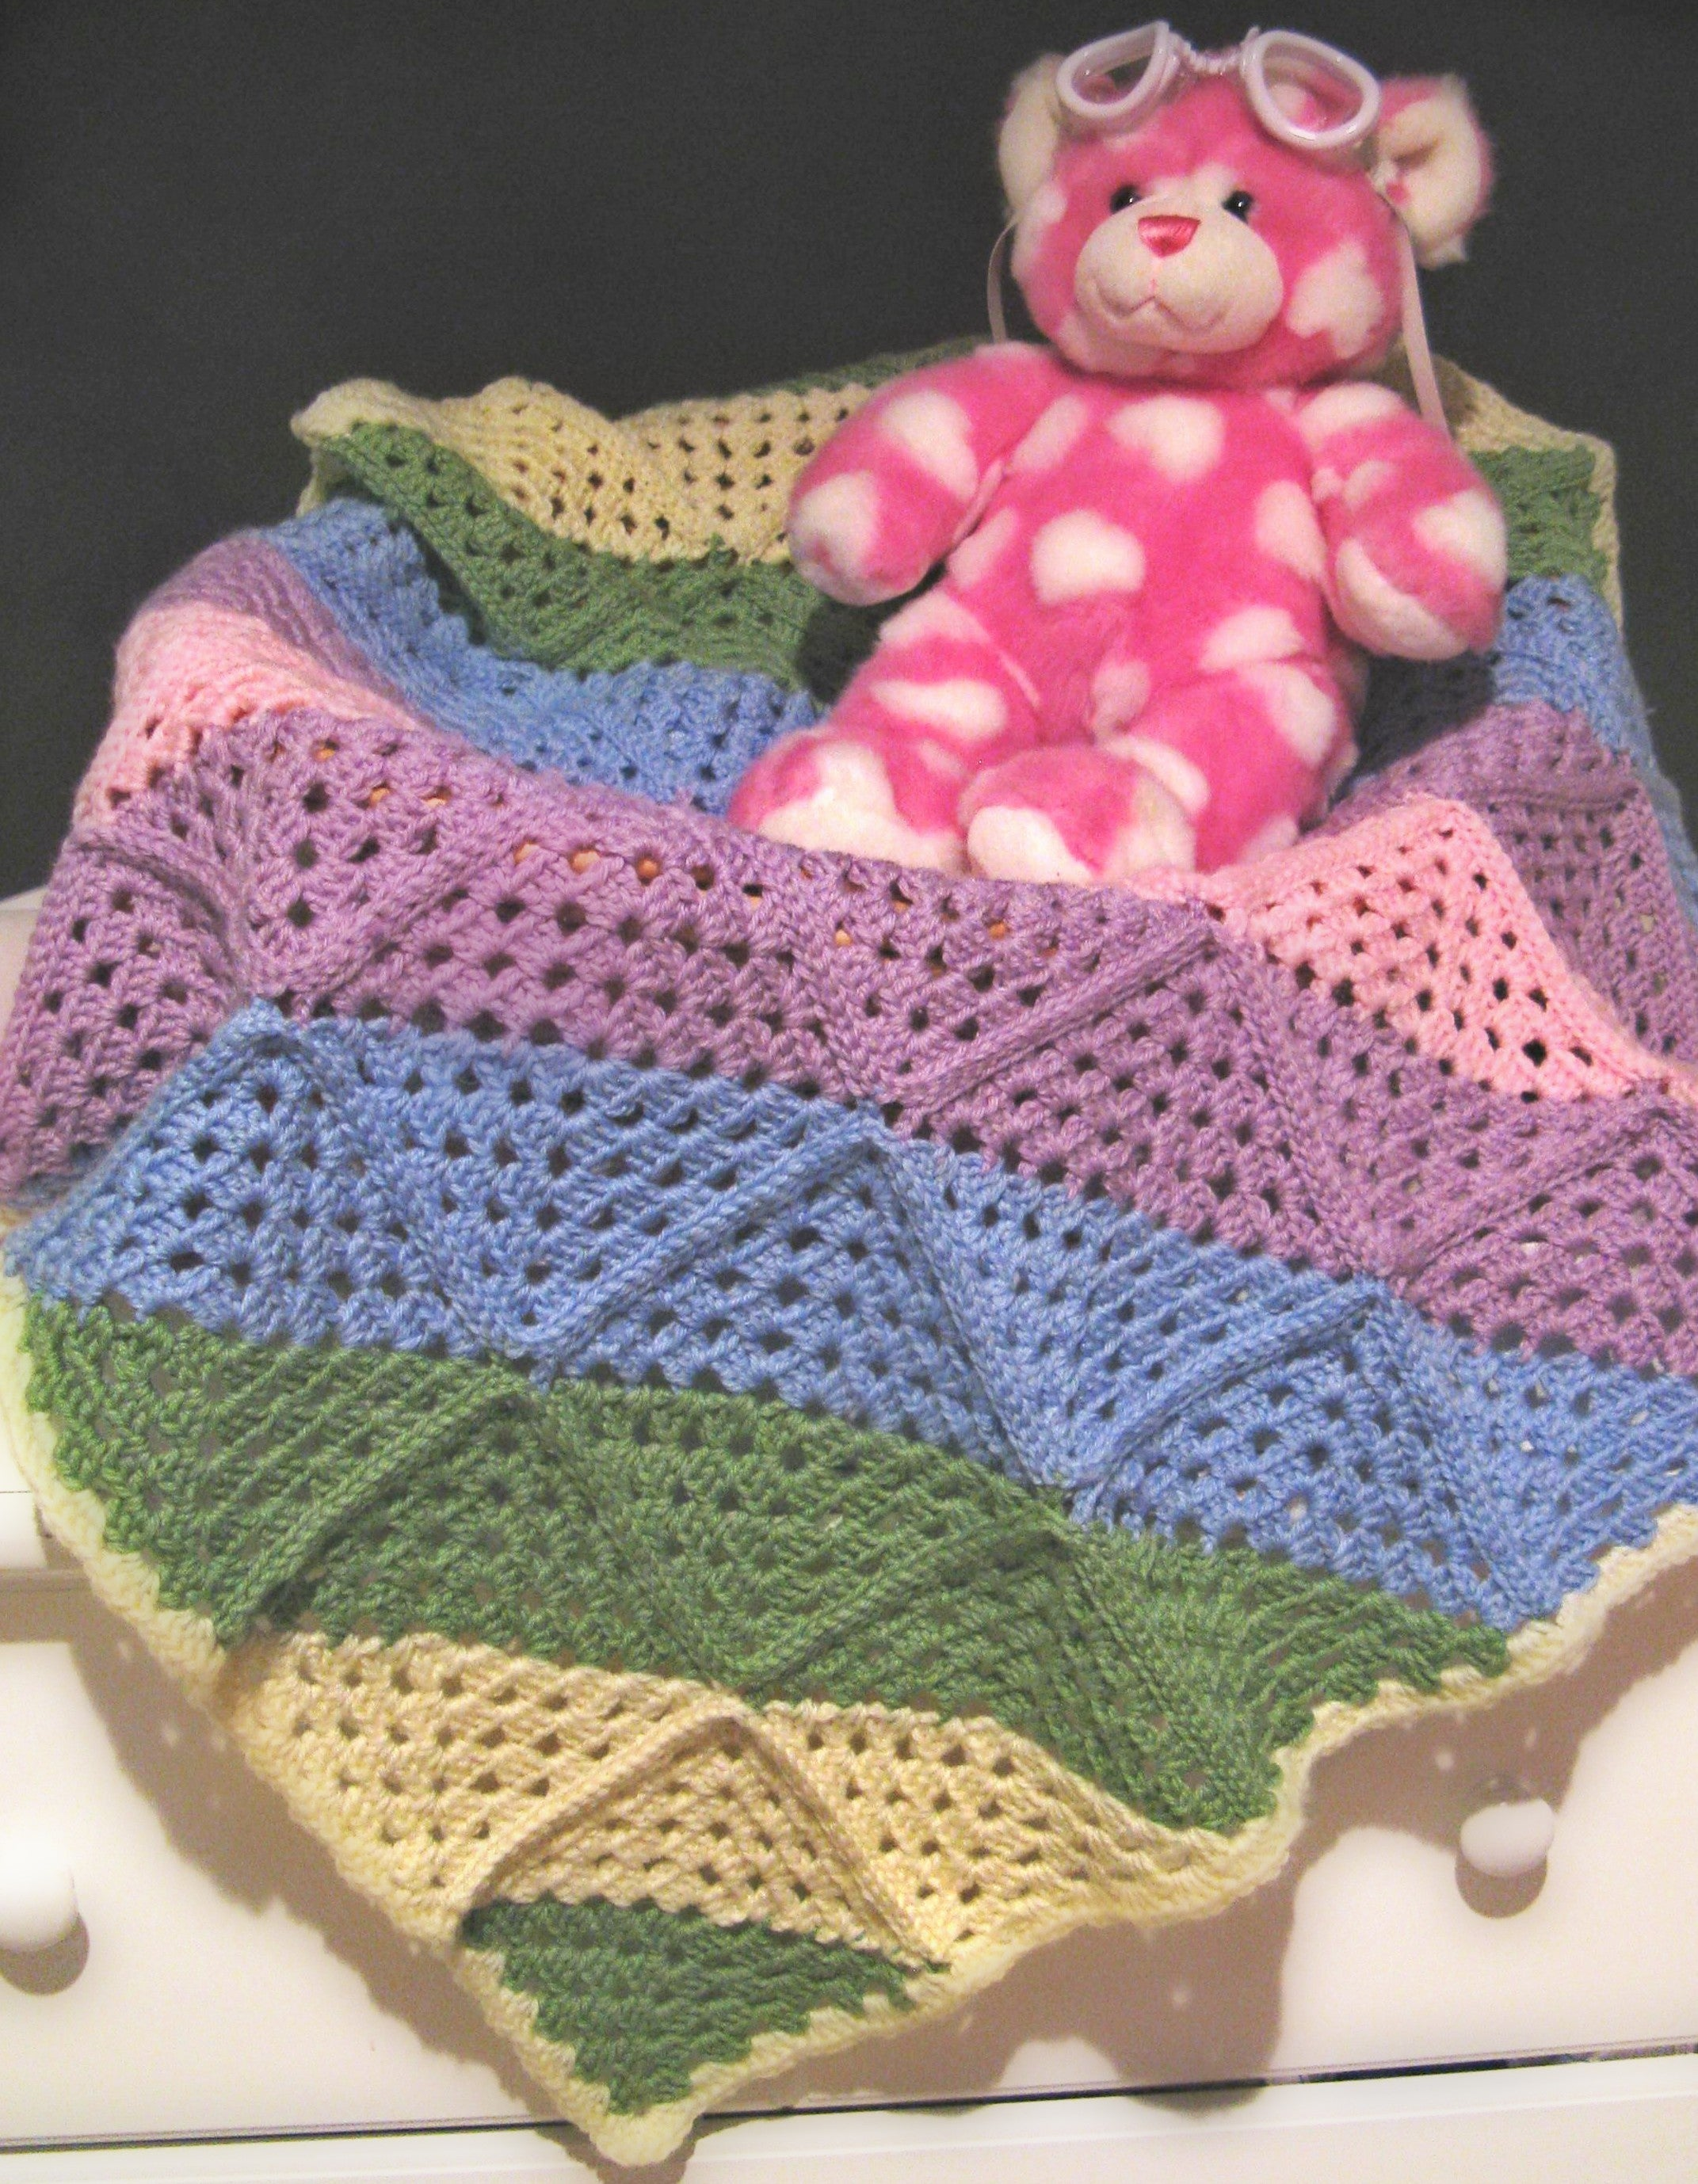 Diagonal Granny Squares Baby Afghan Designed By Stacey Trock Patterns By Kraemer